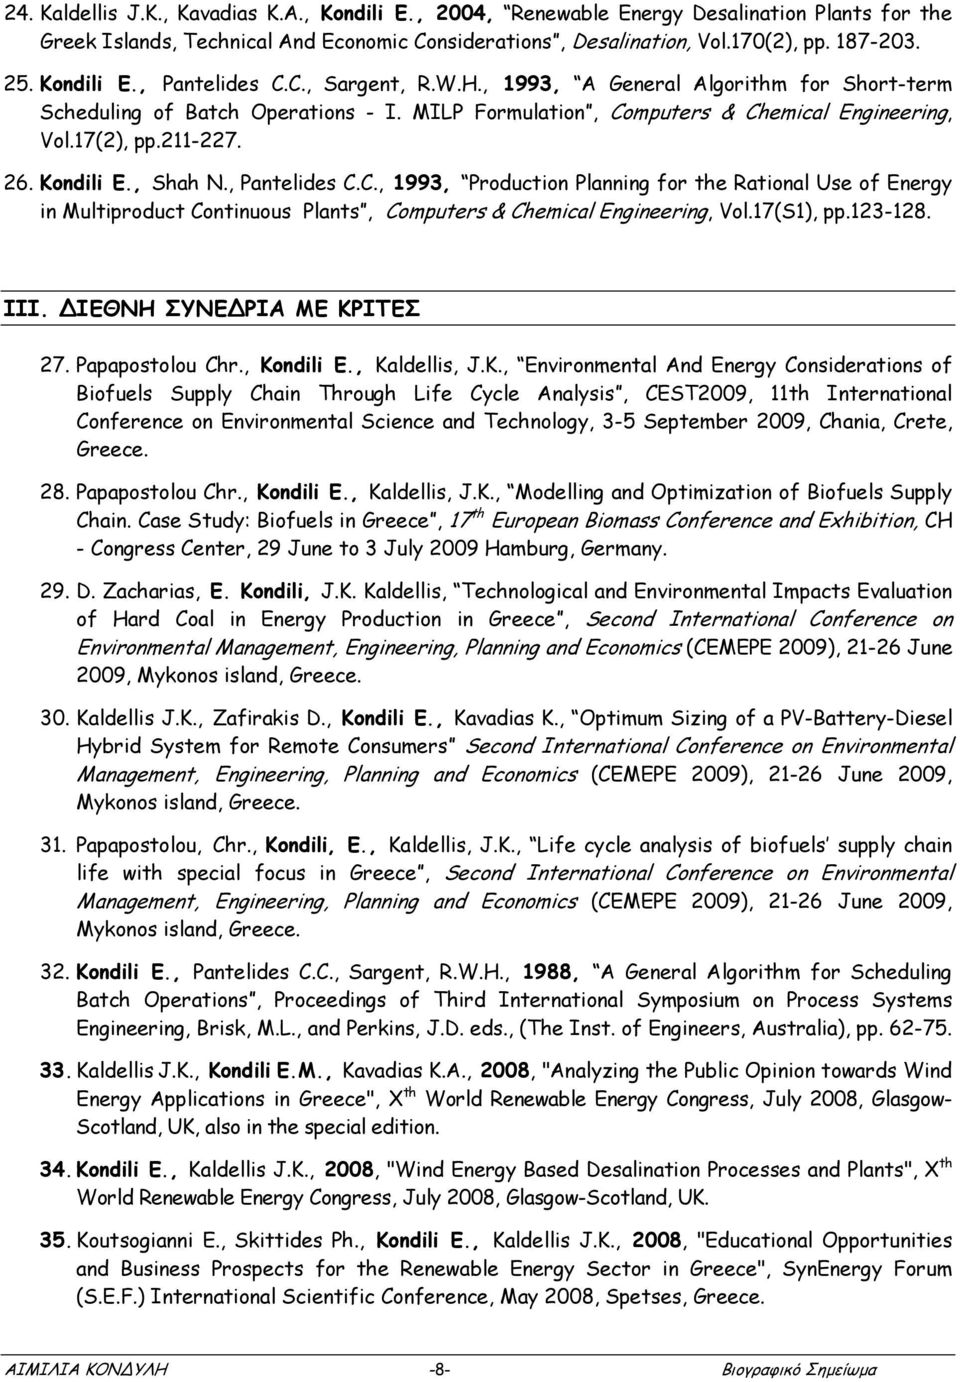 26. Kondili E., Shah N., Pantelides C.C., 1993, Production Planning for the Rational Use of Energy in Multiproduct Continuous Plants, Computers & Chemical Engineering, Vol.17(S1), pp.123-128. ΙΙΙ.